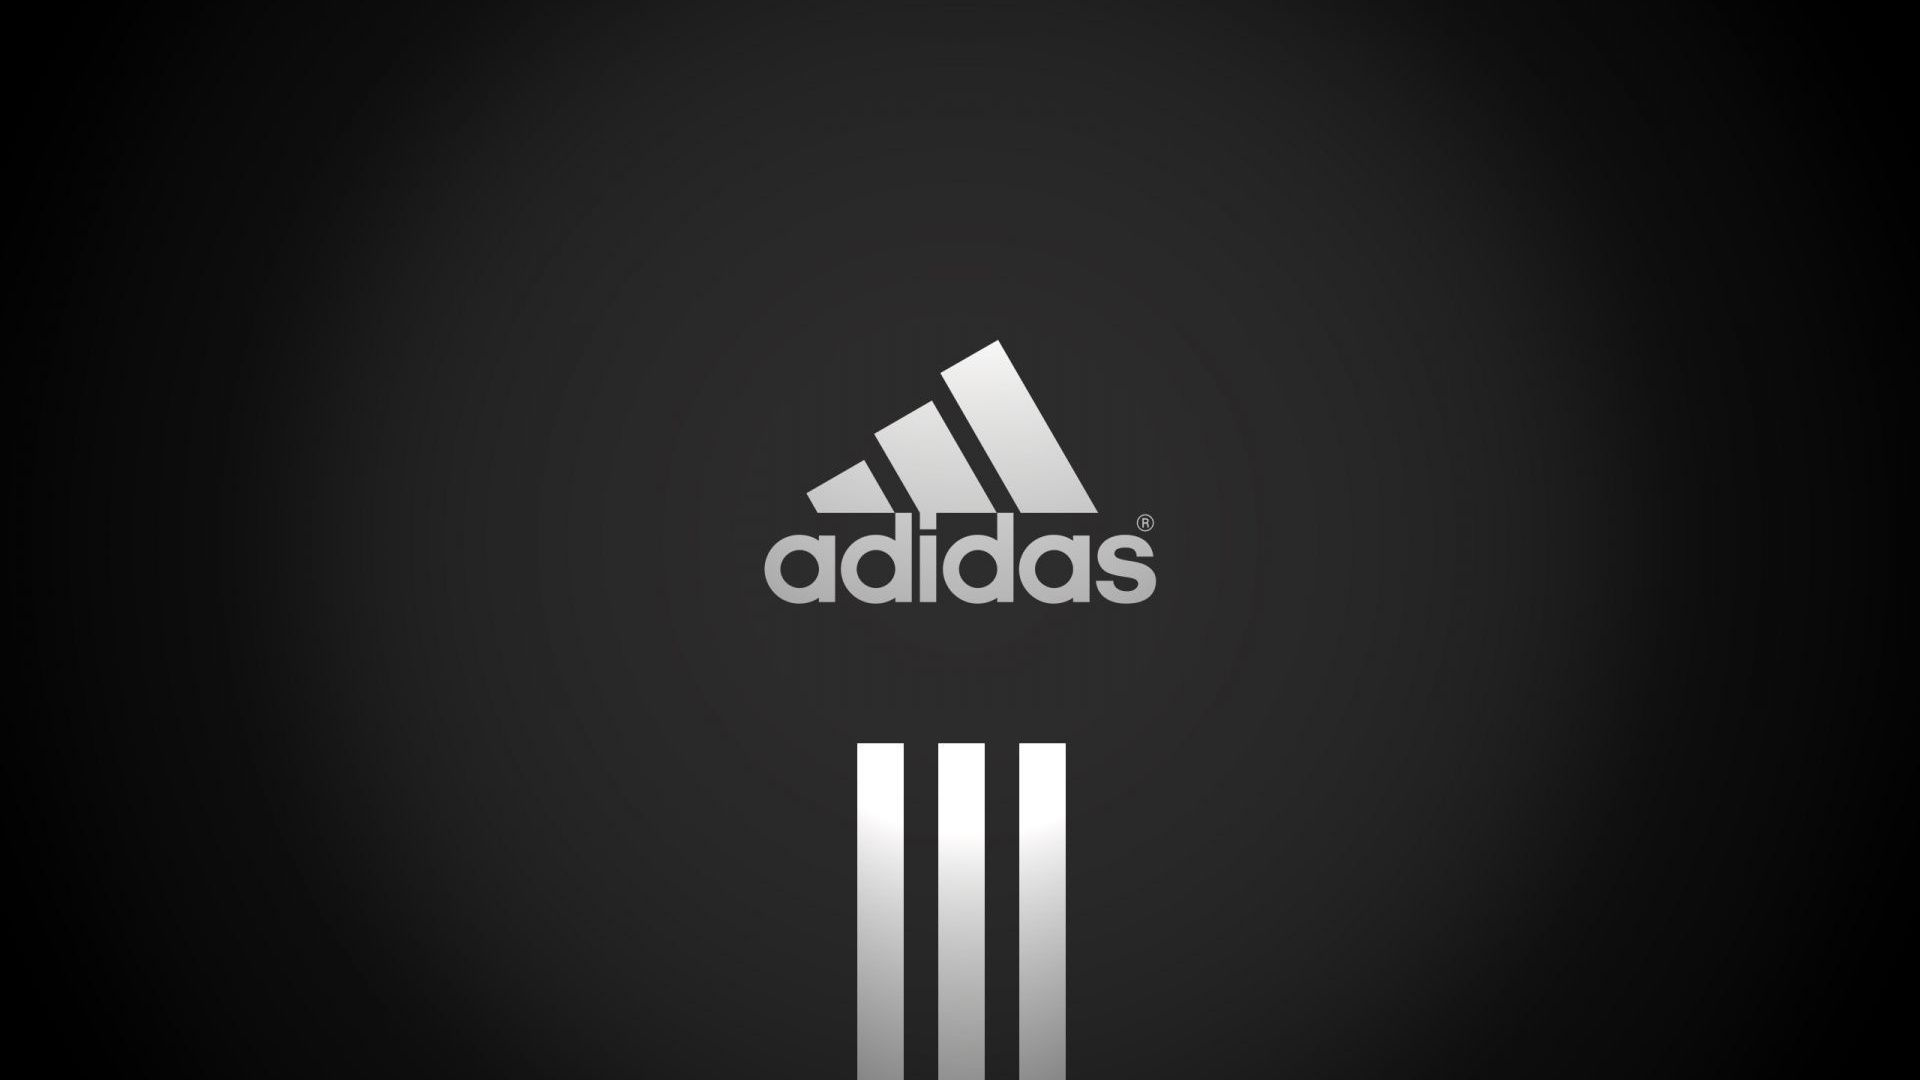 Adidas Black 1080p HD Logo Desktop Wallpaper Places to Visit in 1920x1080